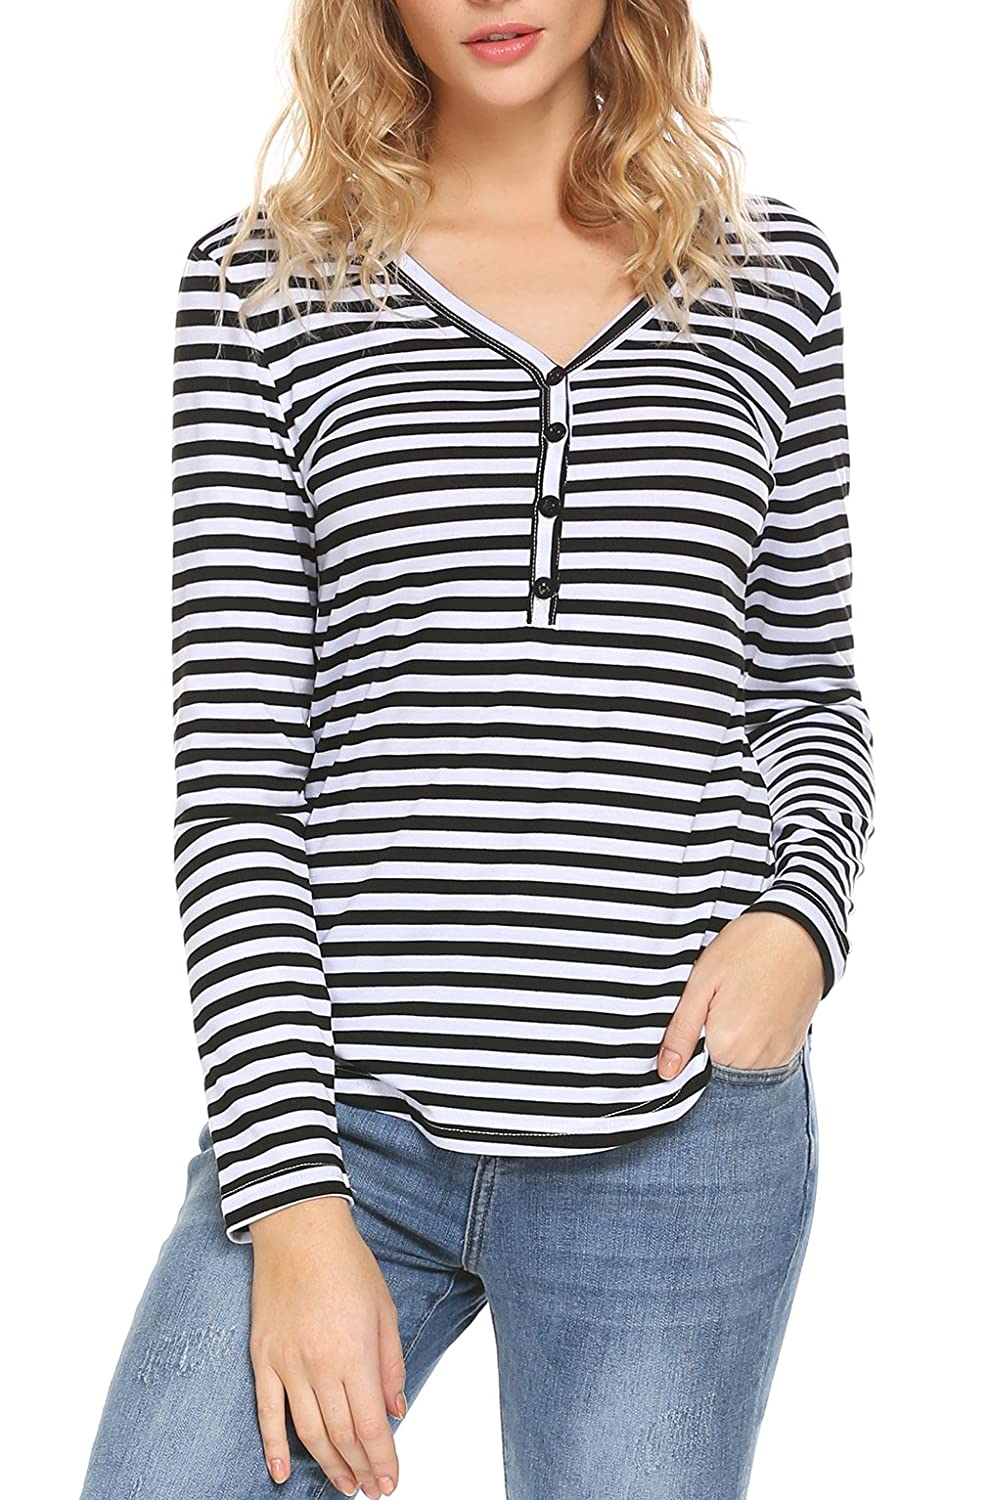 EASTHER Women V Neck Striped Henley Shirts Top Long Sleeve Tee Shirt Blouse with Button